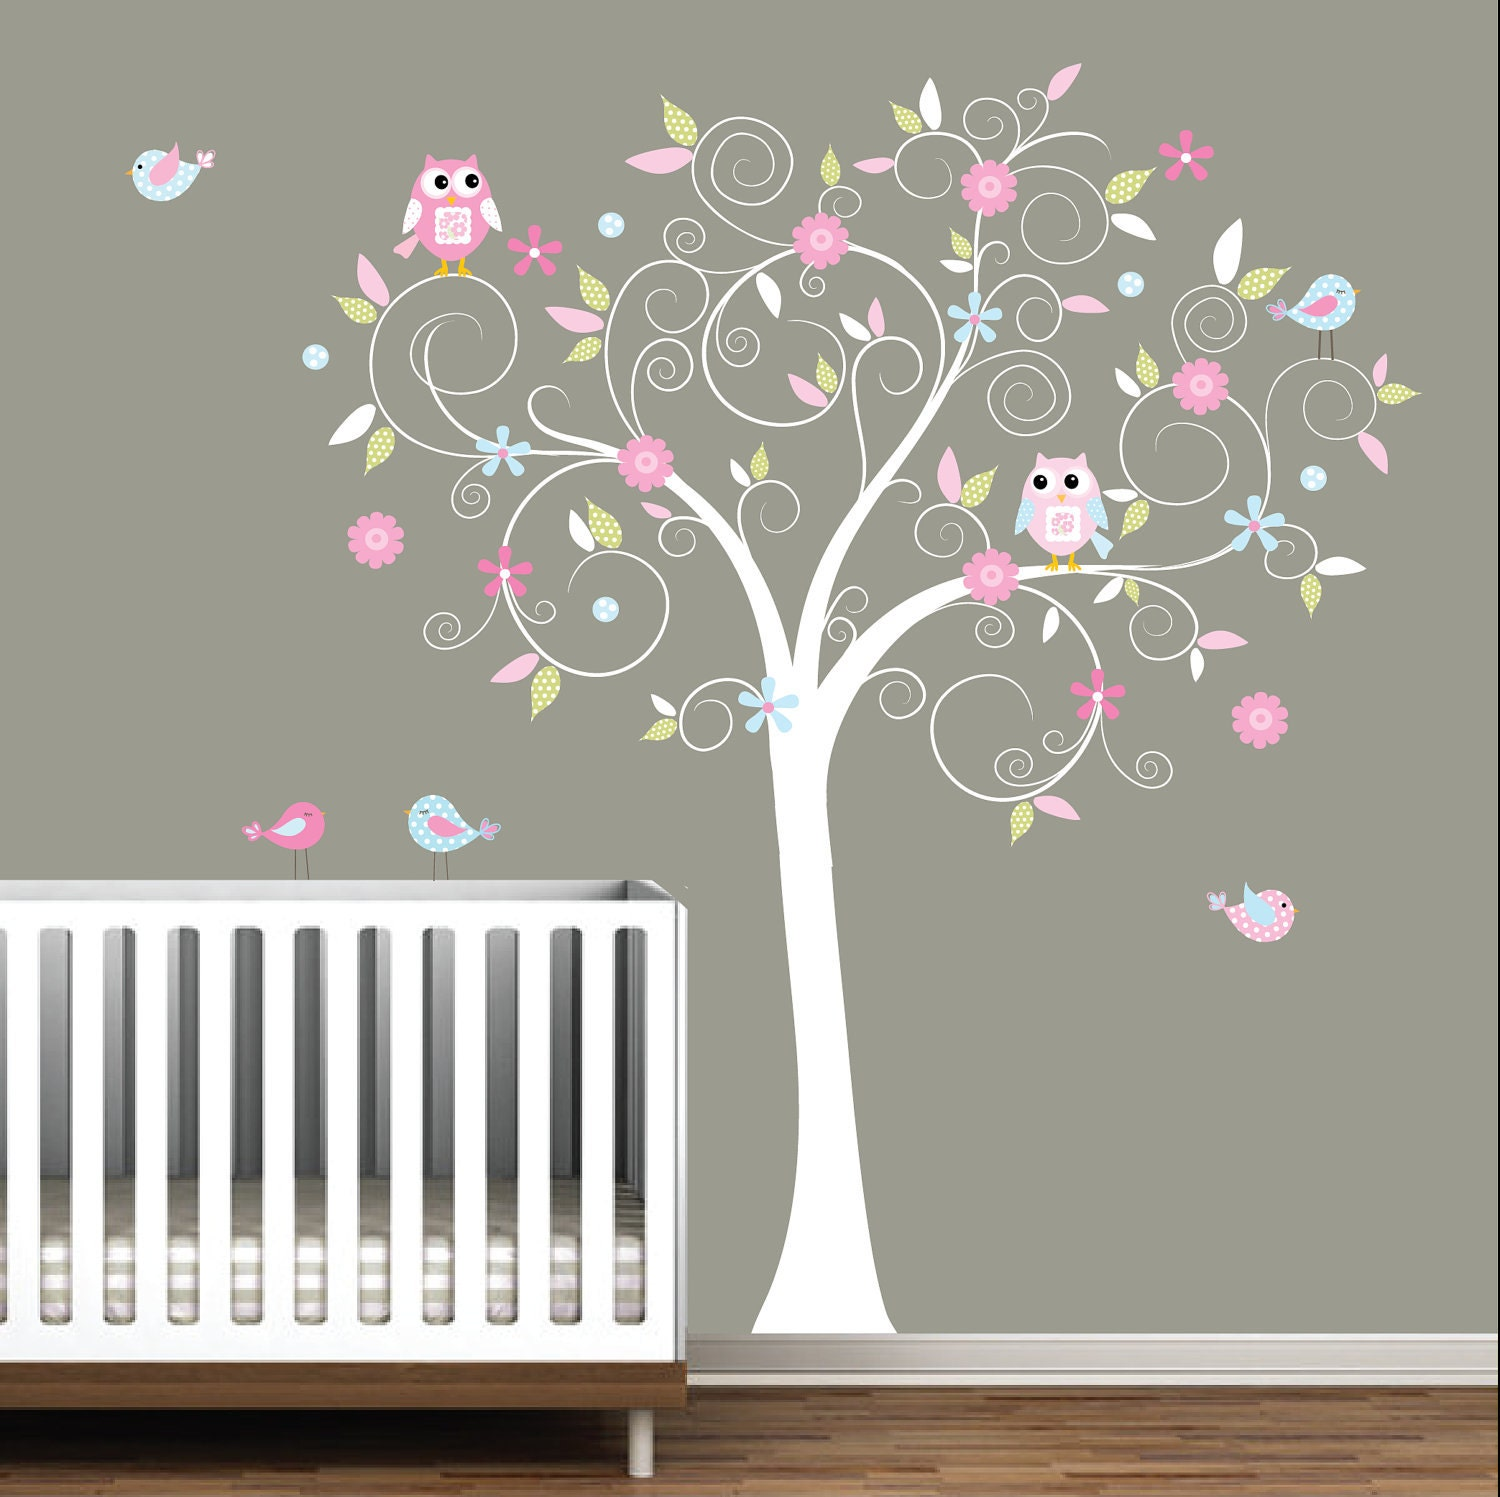 Decal stickers vinyl wall decals nursery tree e17 zoom amipublicfo Choice Image